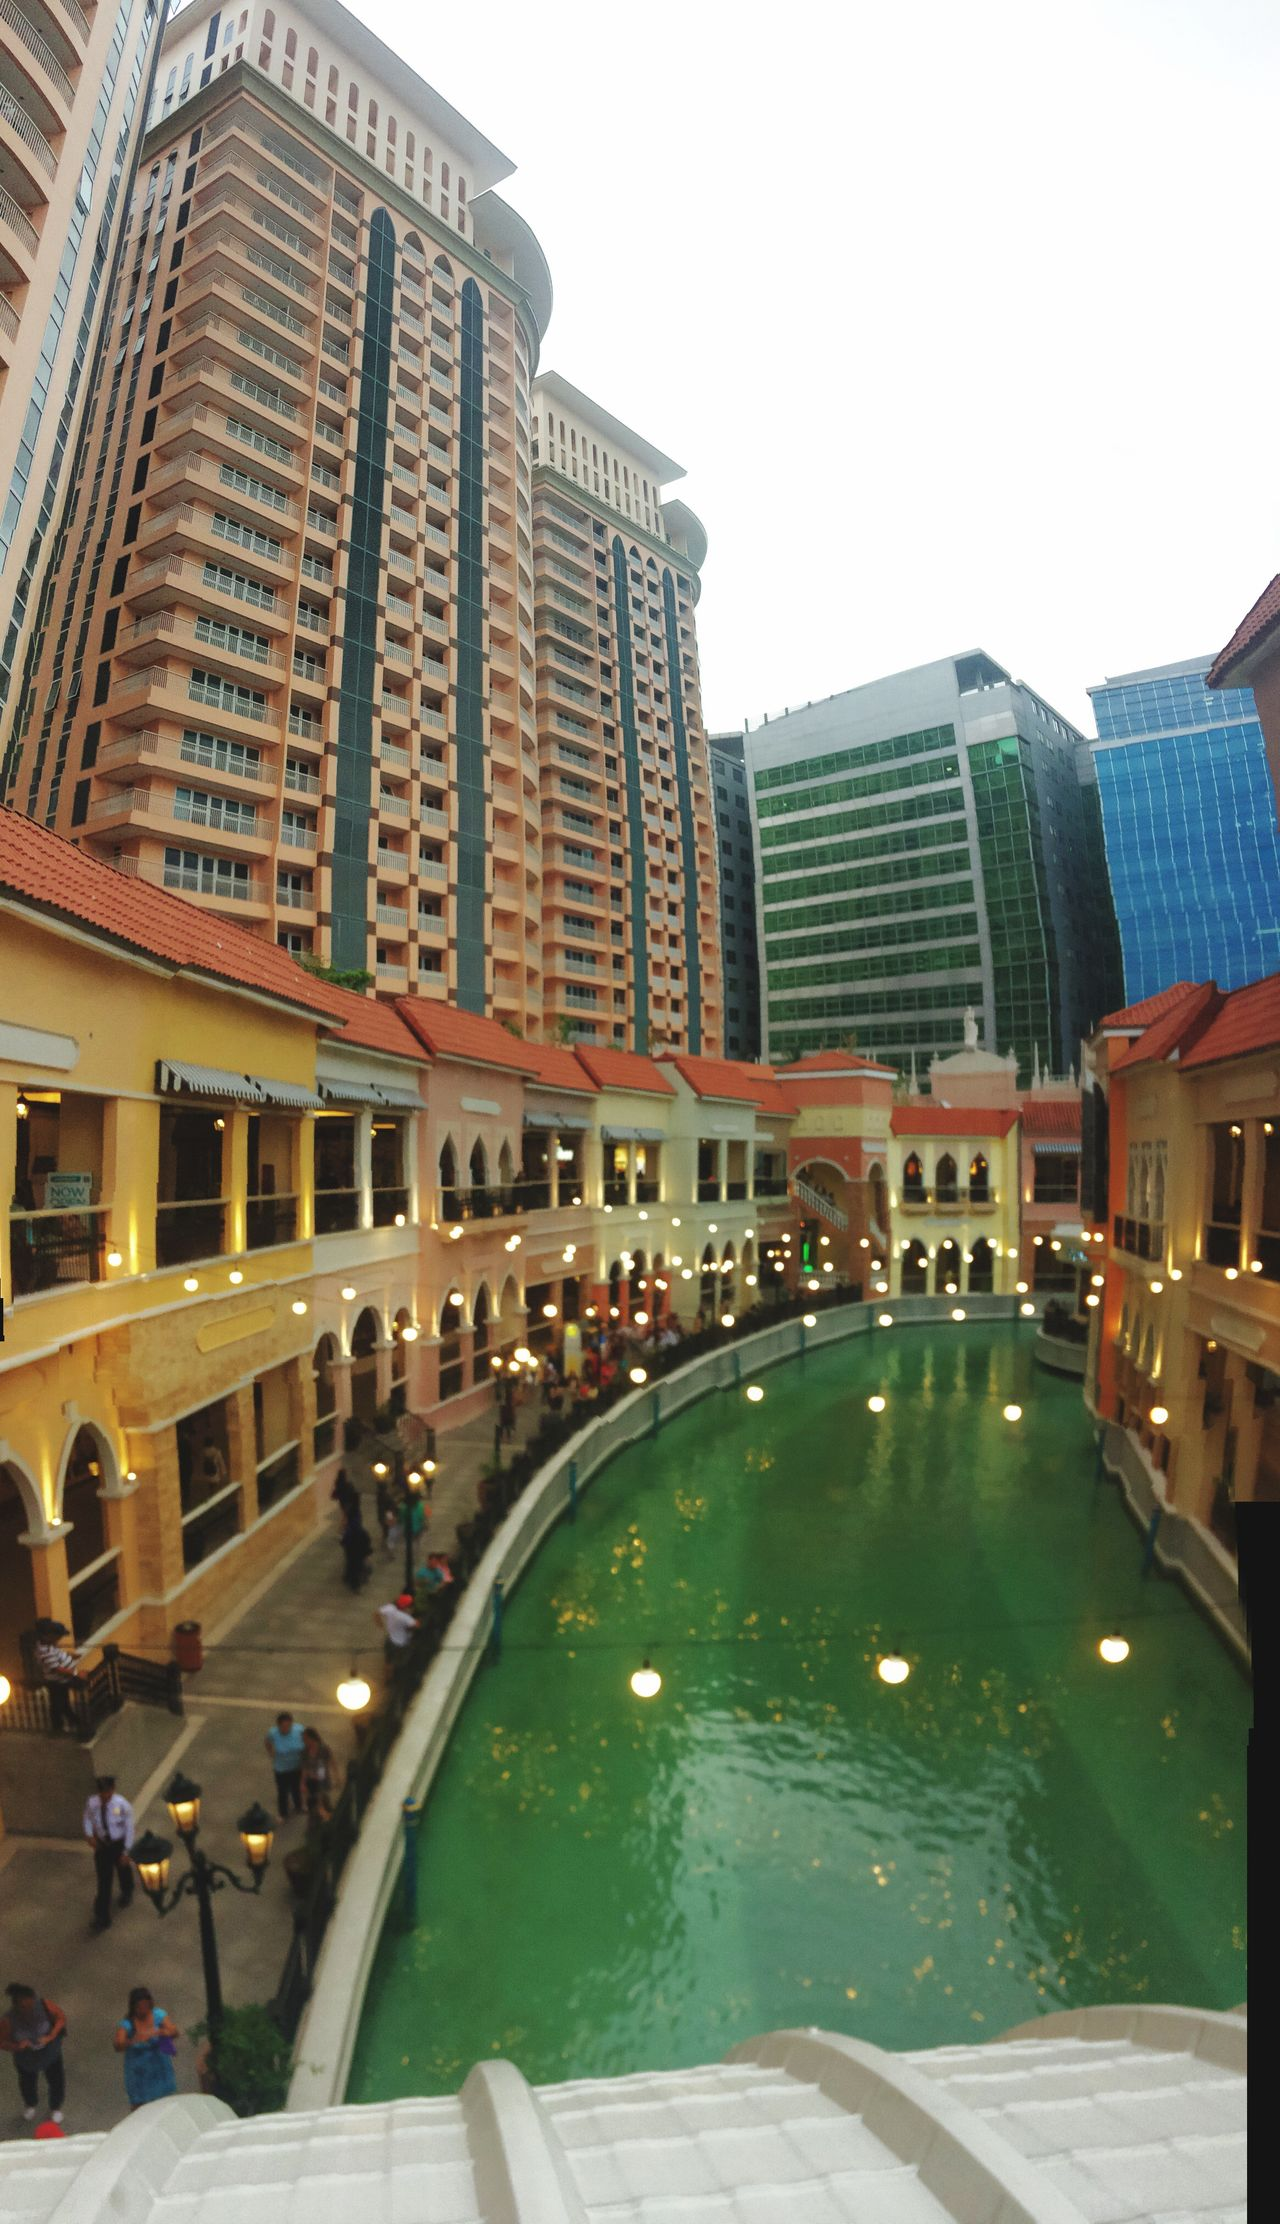 Makati City, Philippines Adventure Architecture Water City Modern City Life Travel Destinations Vacay Tourism Luxury Romance Philippines Canal Venice Lookalike Family Time